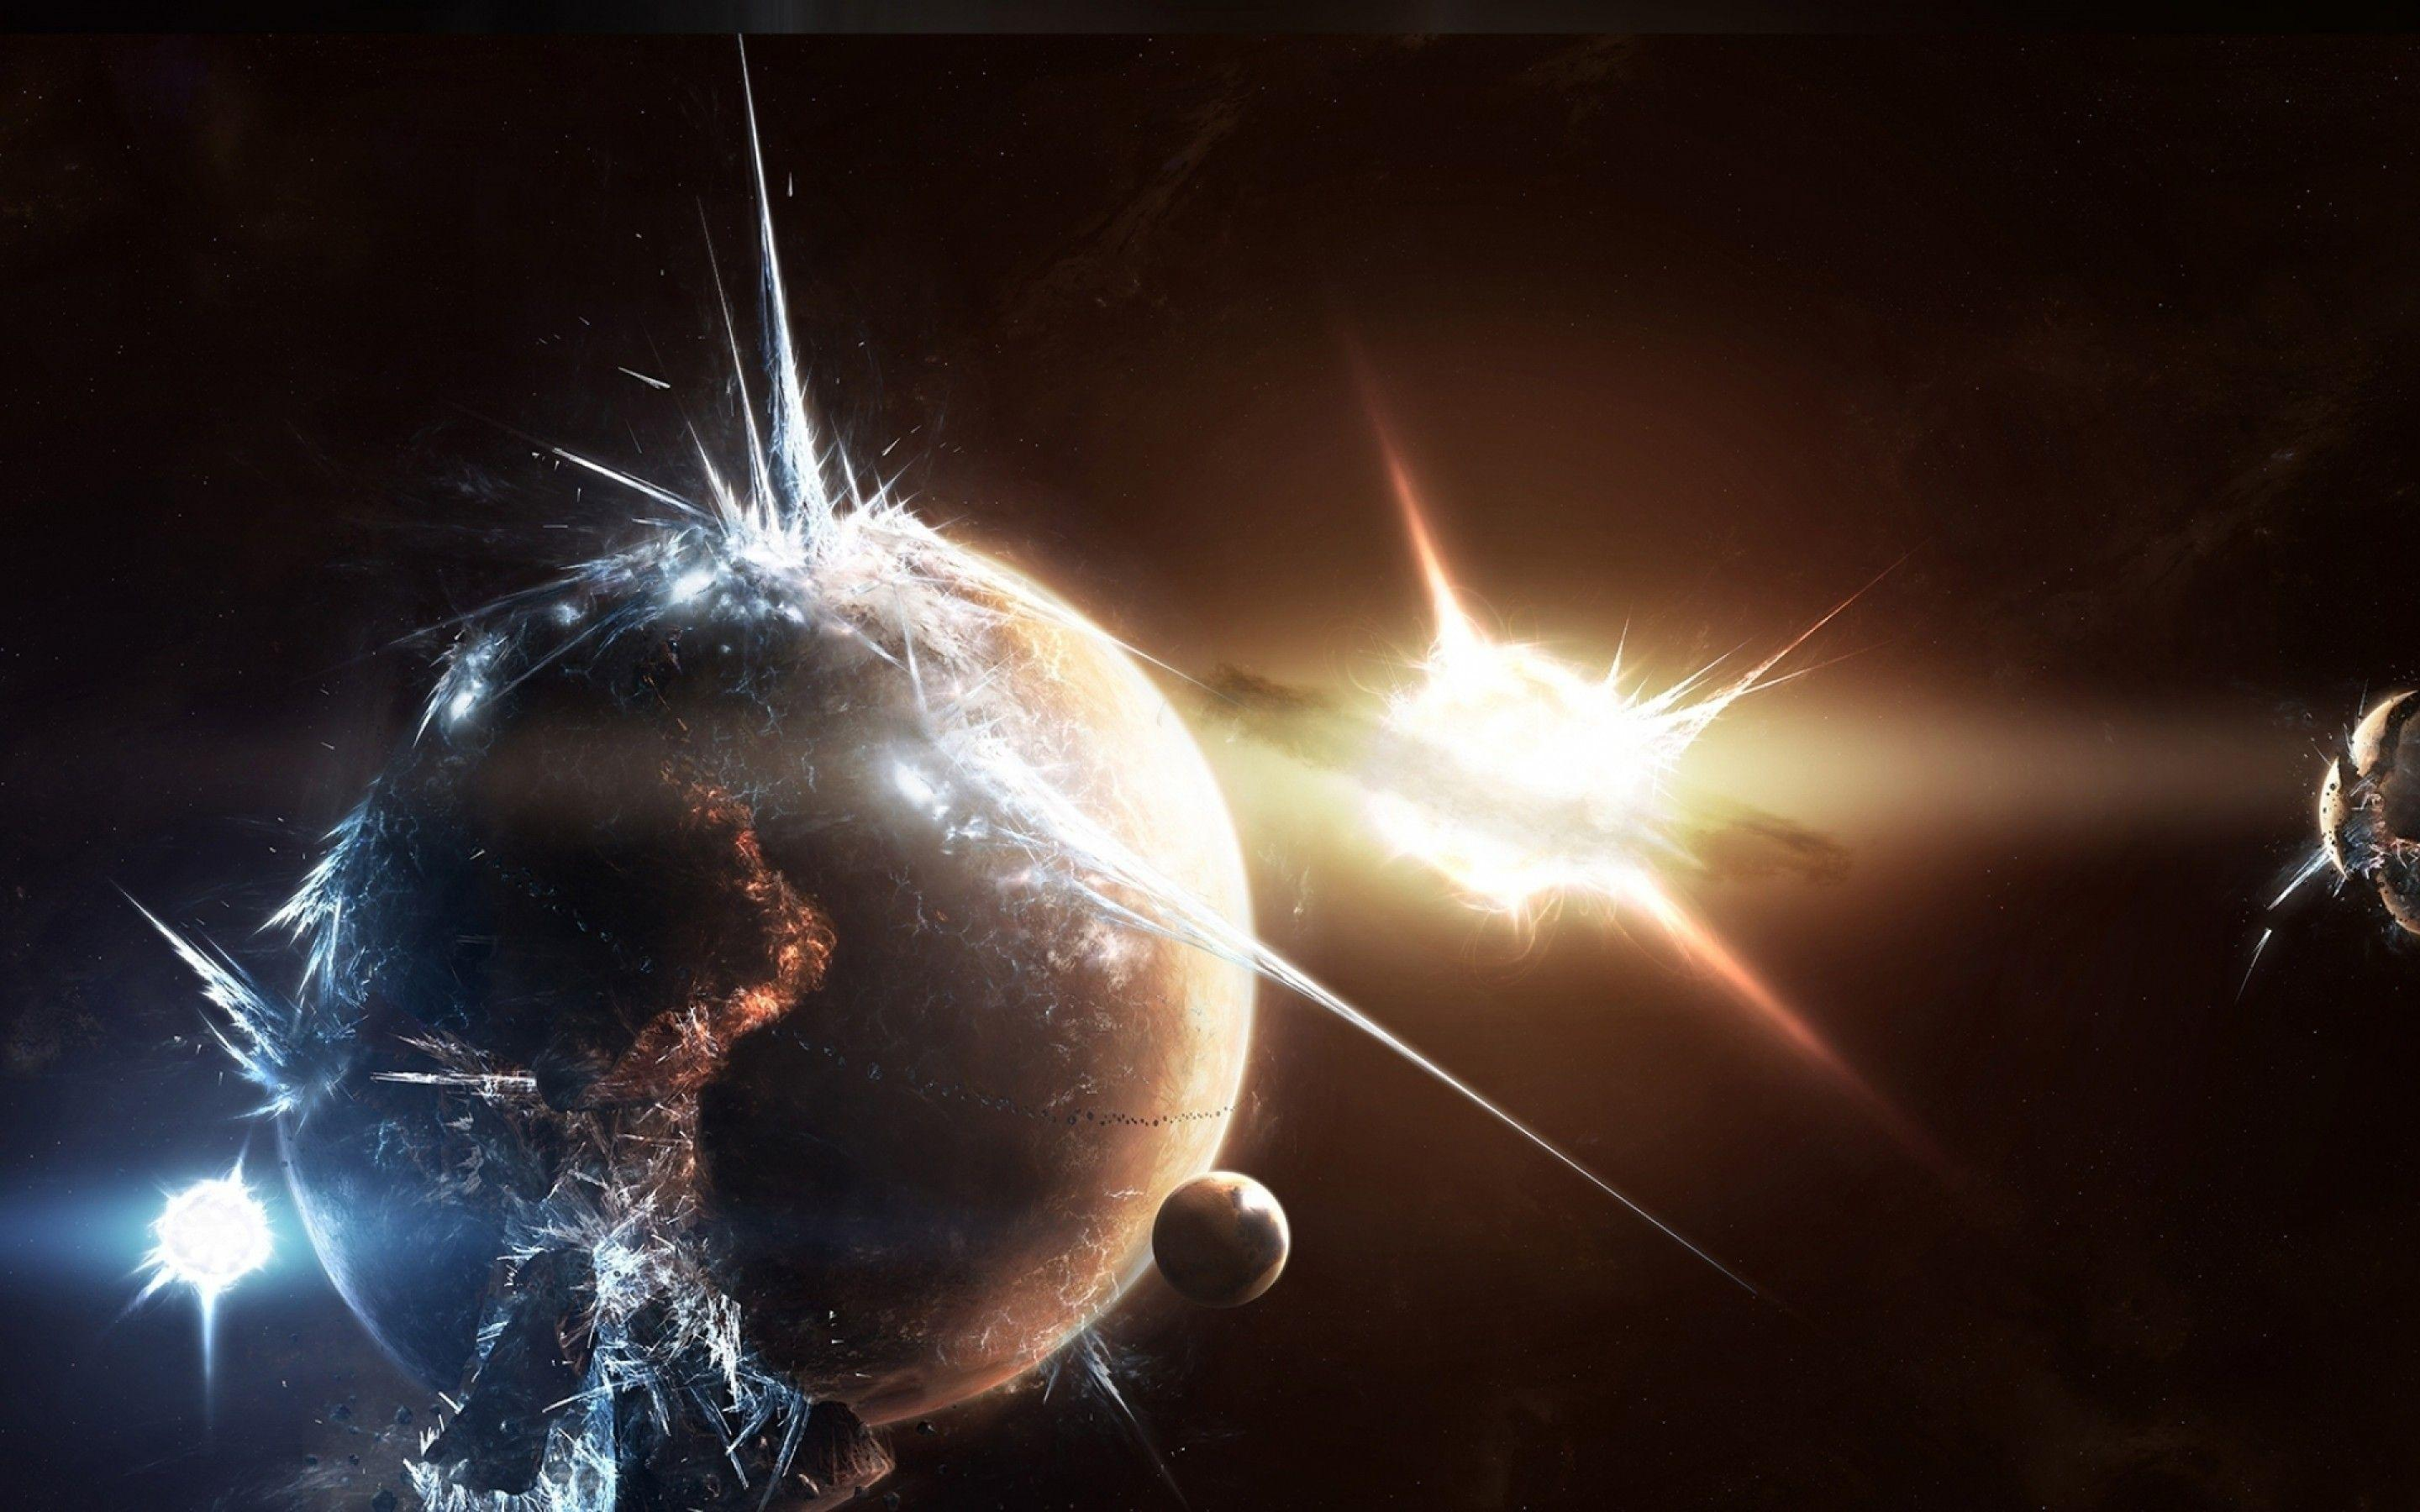 exploding planets wallpapersfor laptops - photo #14